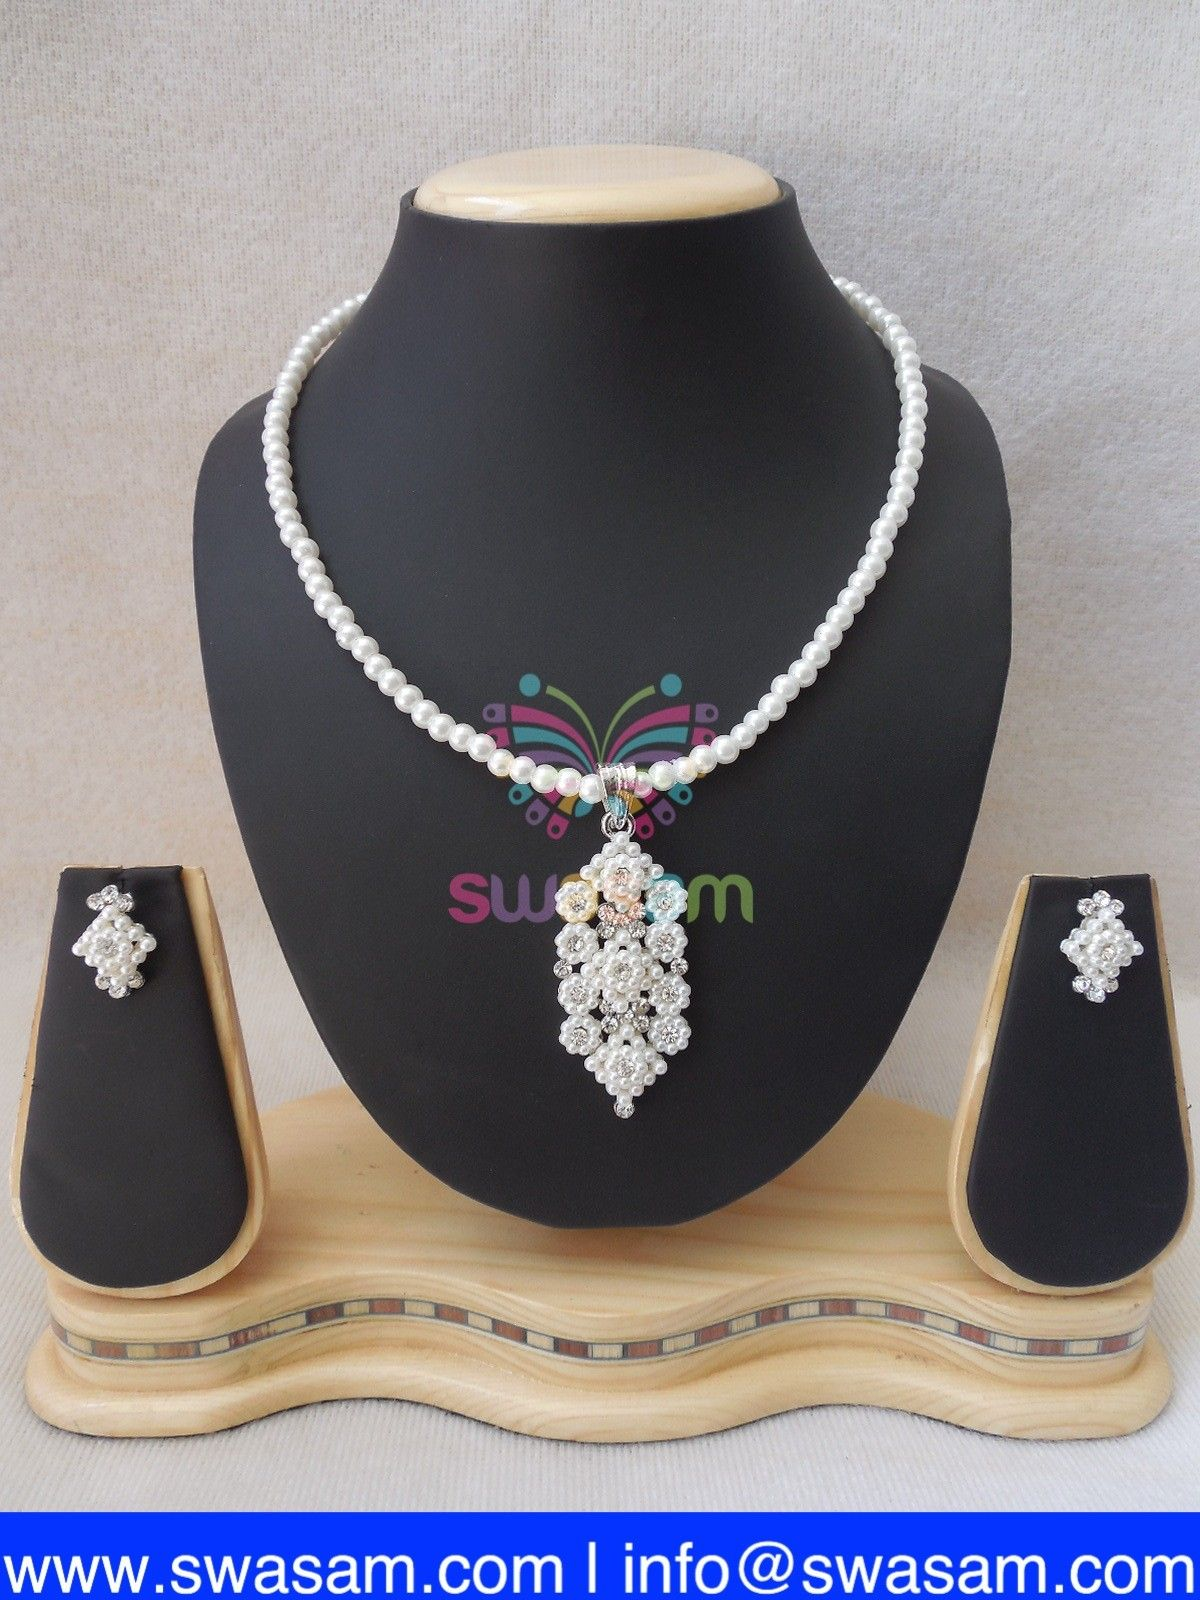 Indian jewelry store swasam pearl pendant set mala pendant